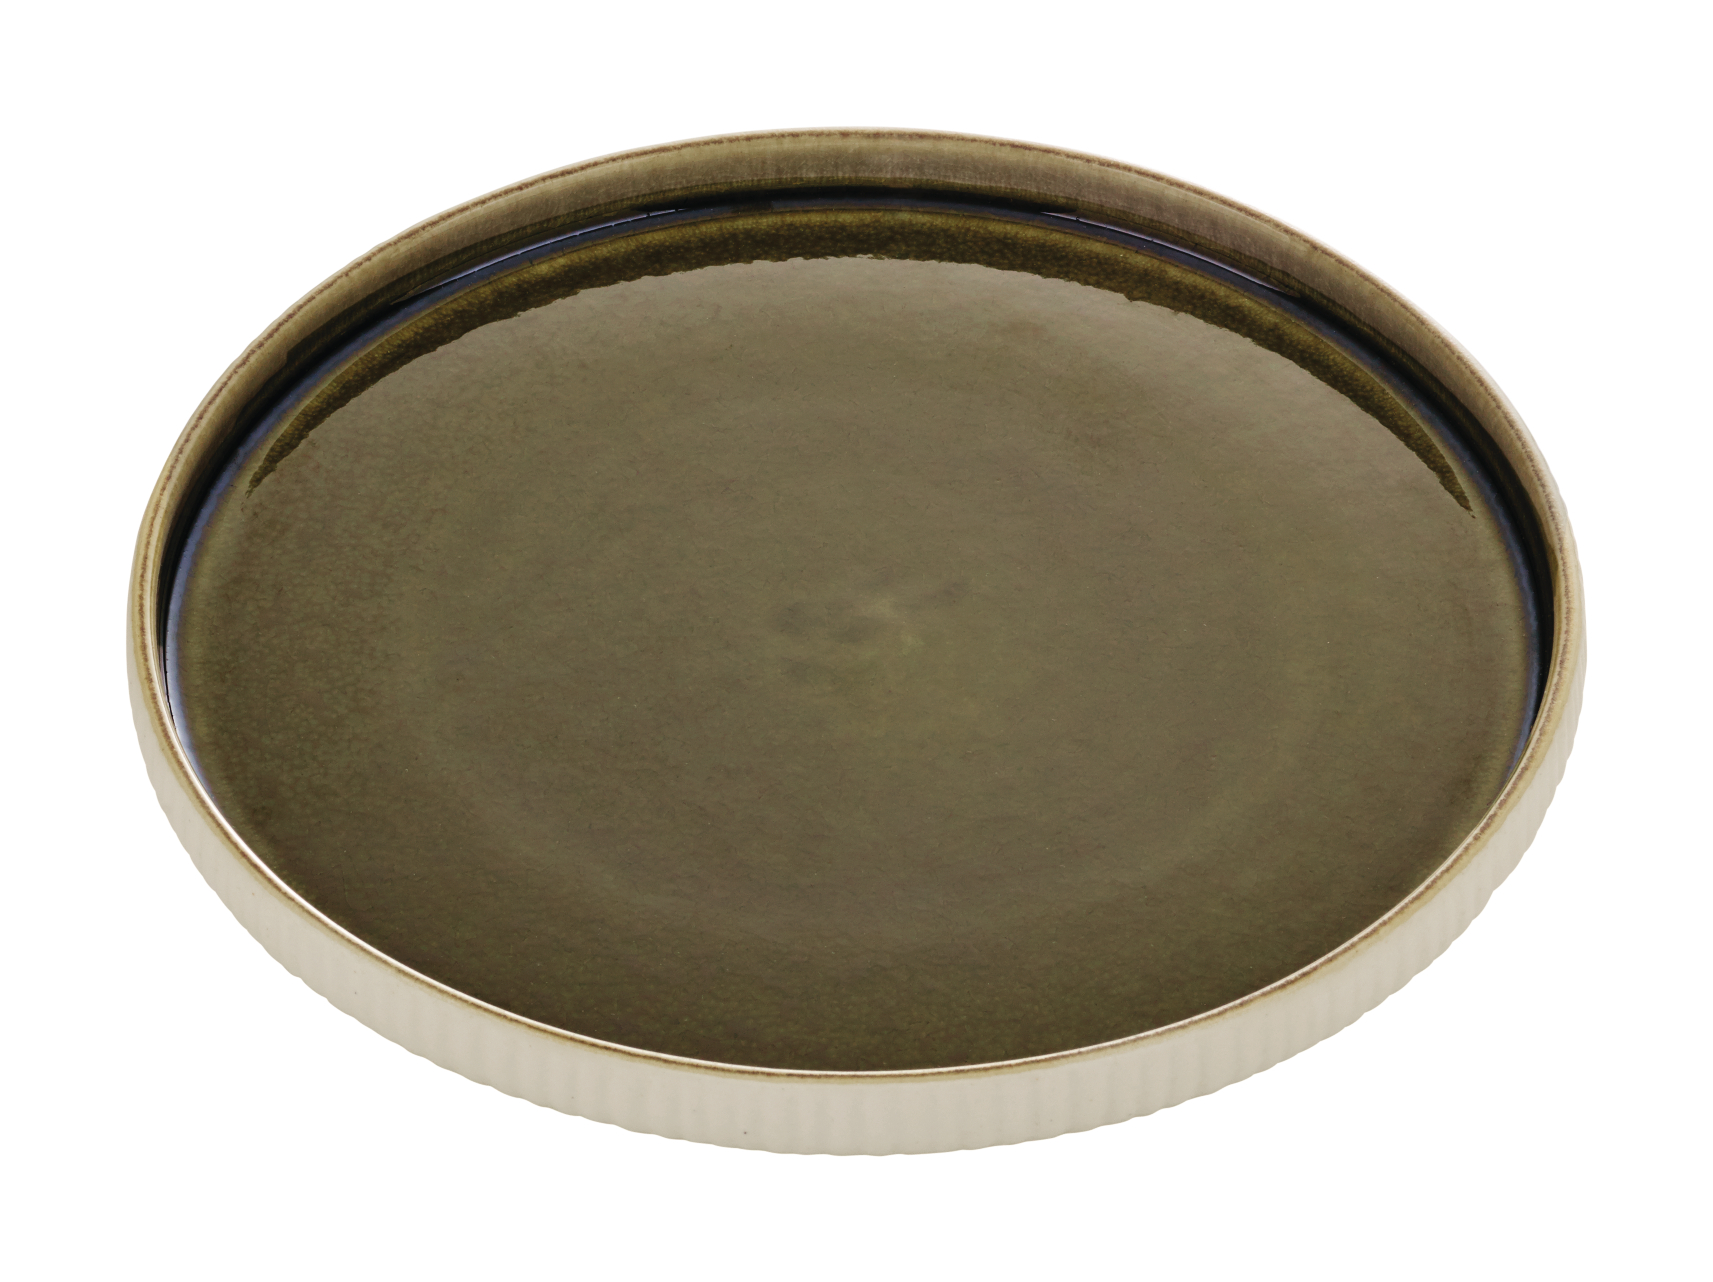 Nara Flat Plate Relief Olive 21cm - Pack of 6